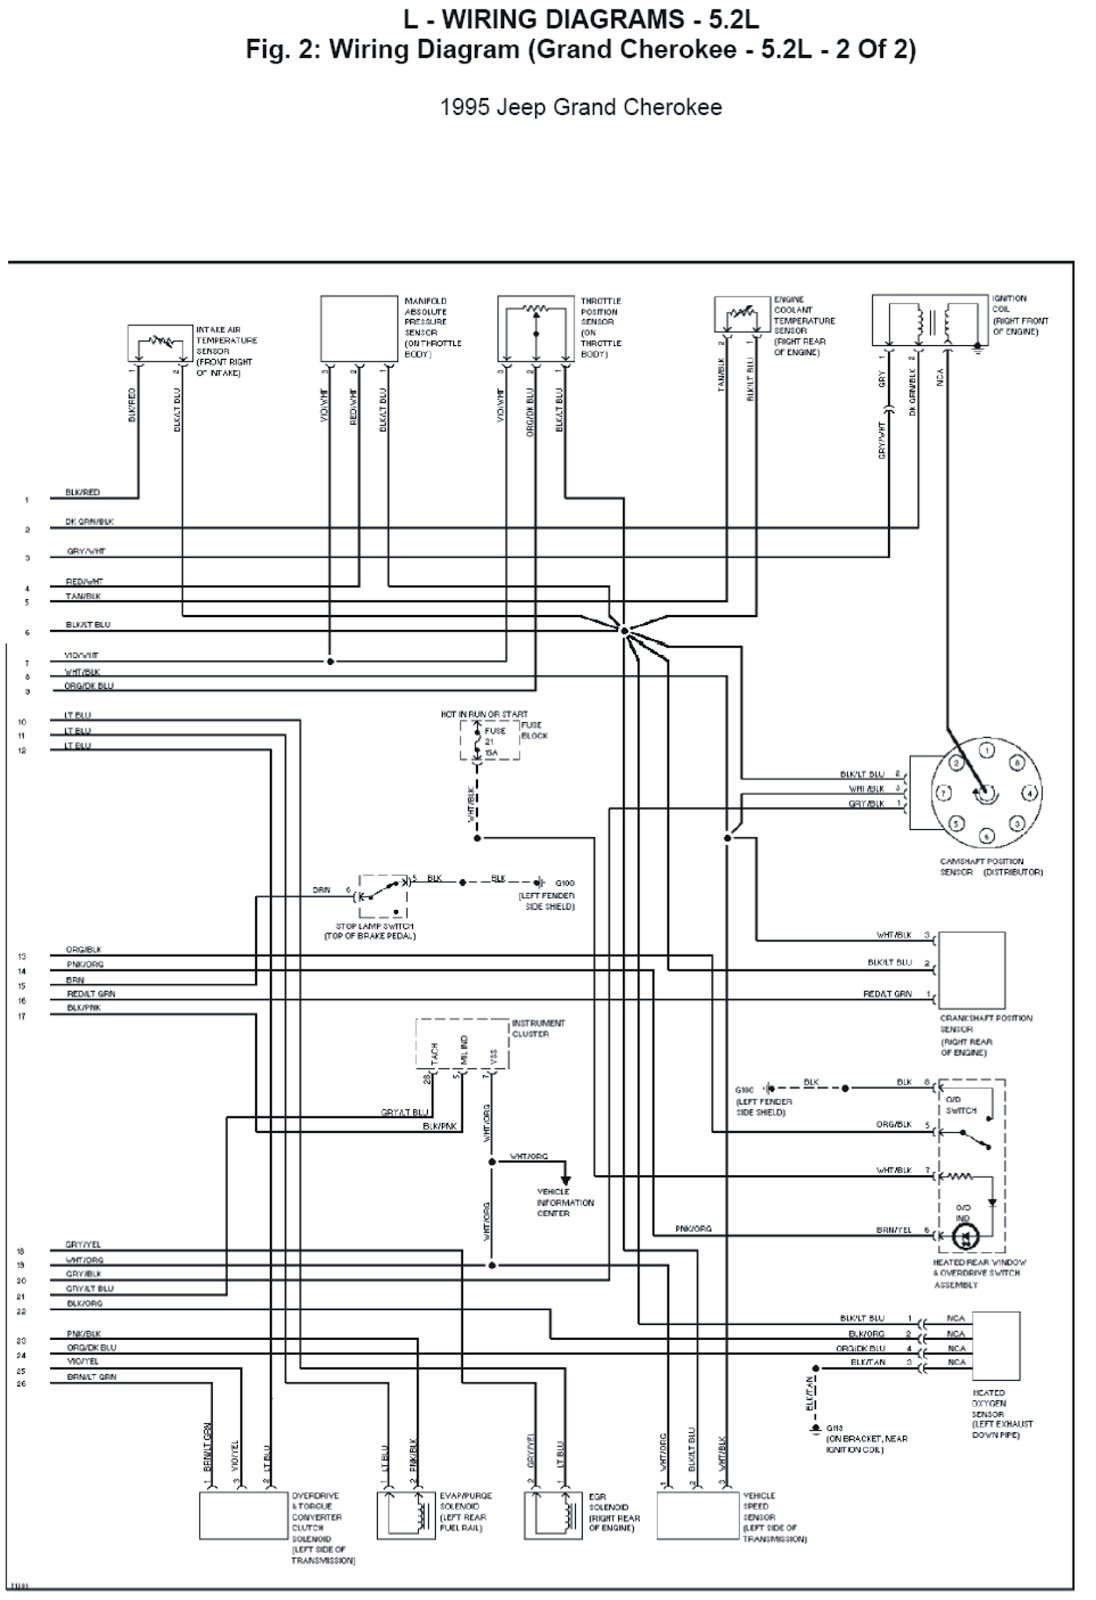 medium resolution of 1995 cherokee wiring diagram 1995 jeep schematics and wiring diagrams jeep wrangler 93